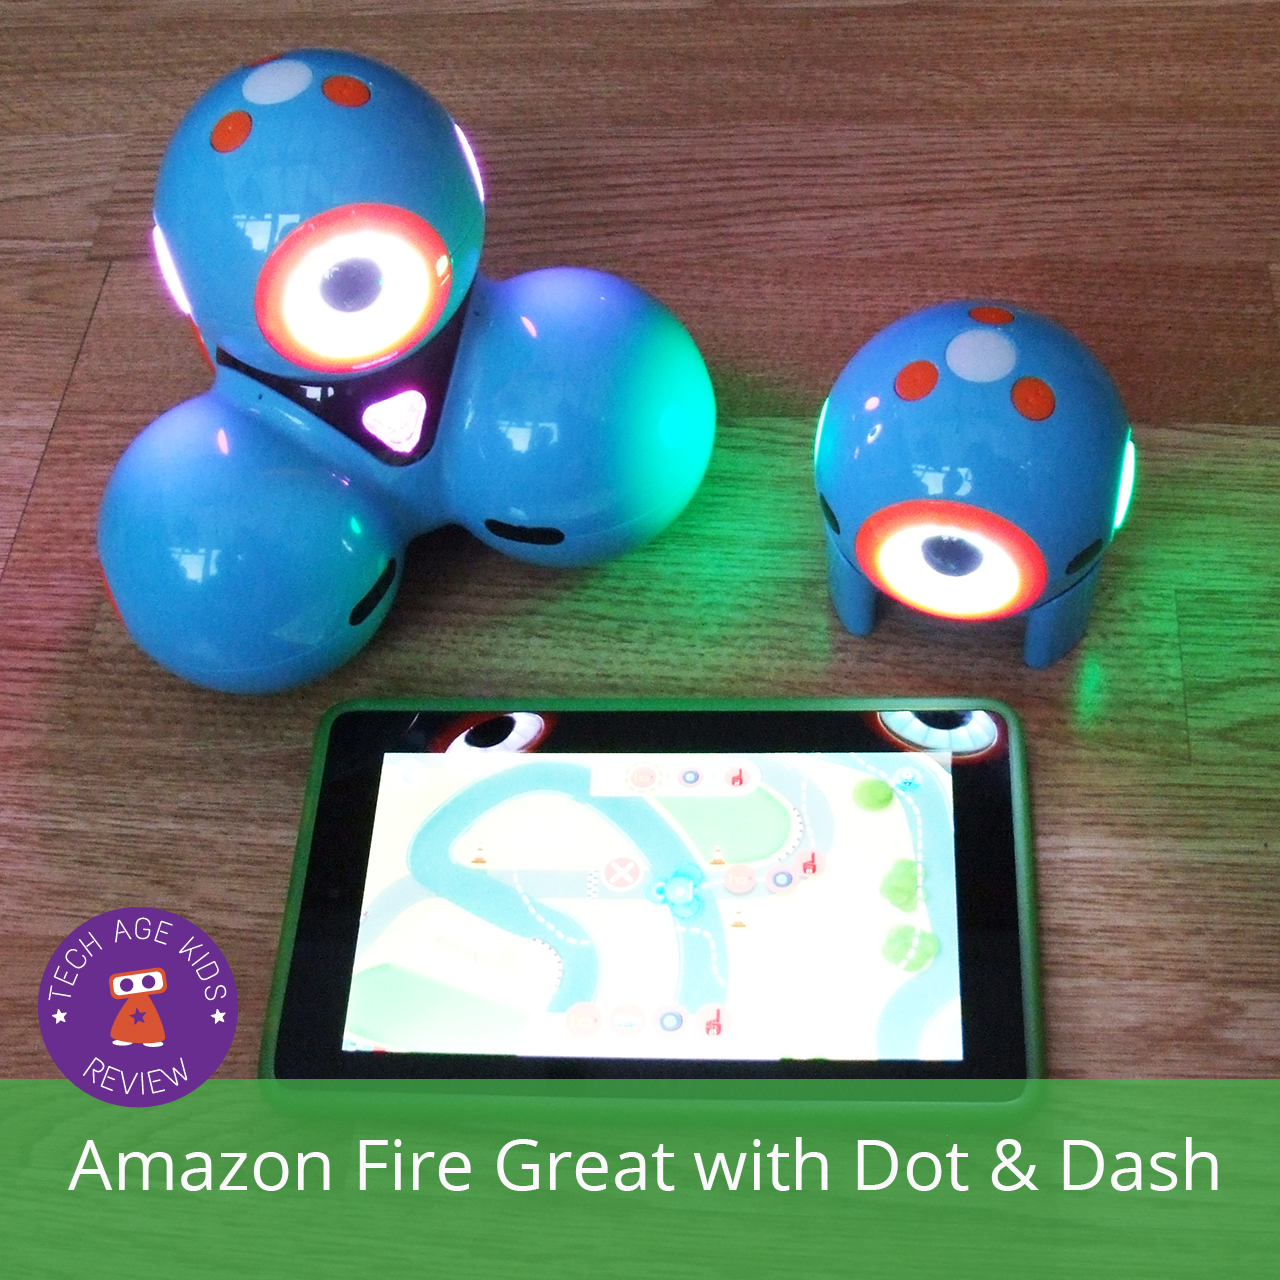 Amazon Fire Great with Dash and Dot Robots | Tech Age Kids